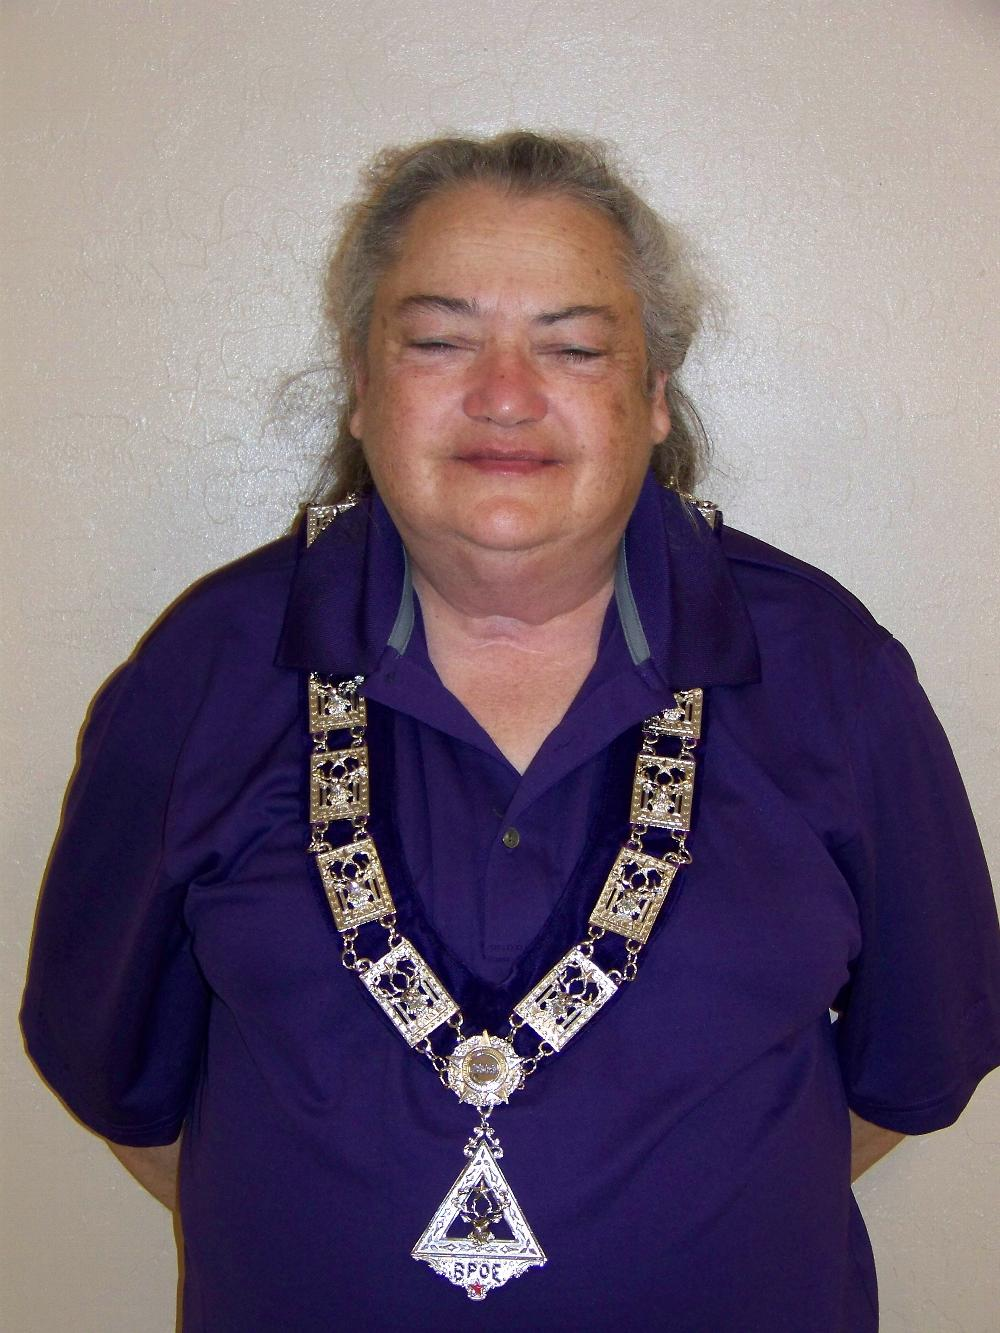 BEVERLY MAYFIELD TRUSTEE